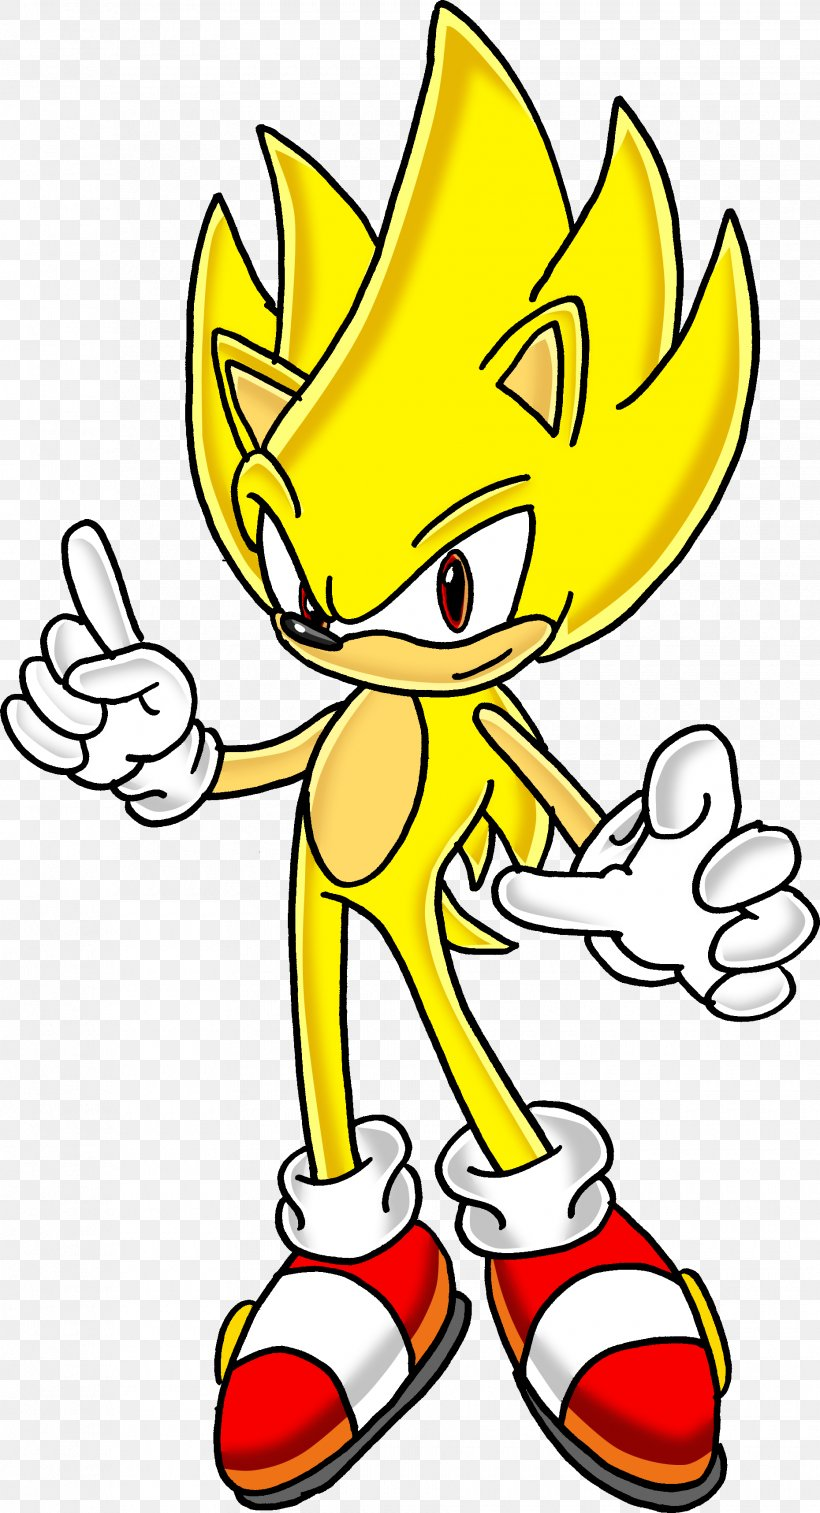 Sonic The Hedgehog Shadow The Hedgehog Sonic And The Secret Rings Sonic Adventure 2 Supersonic Speed